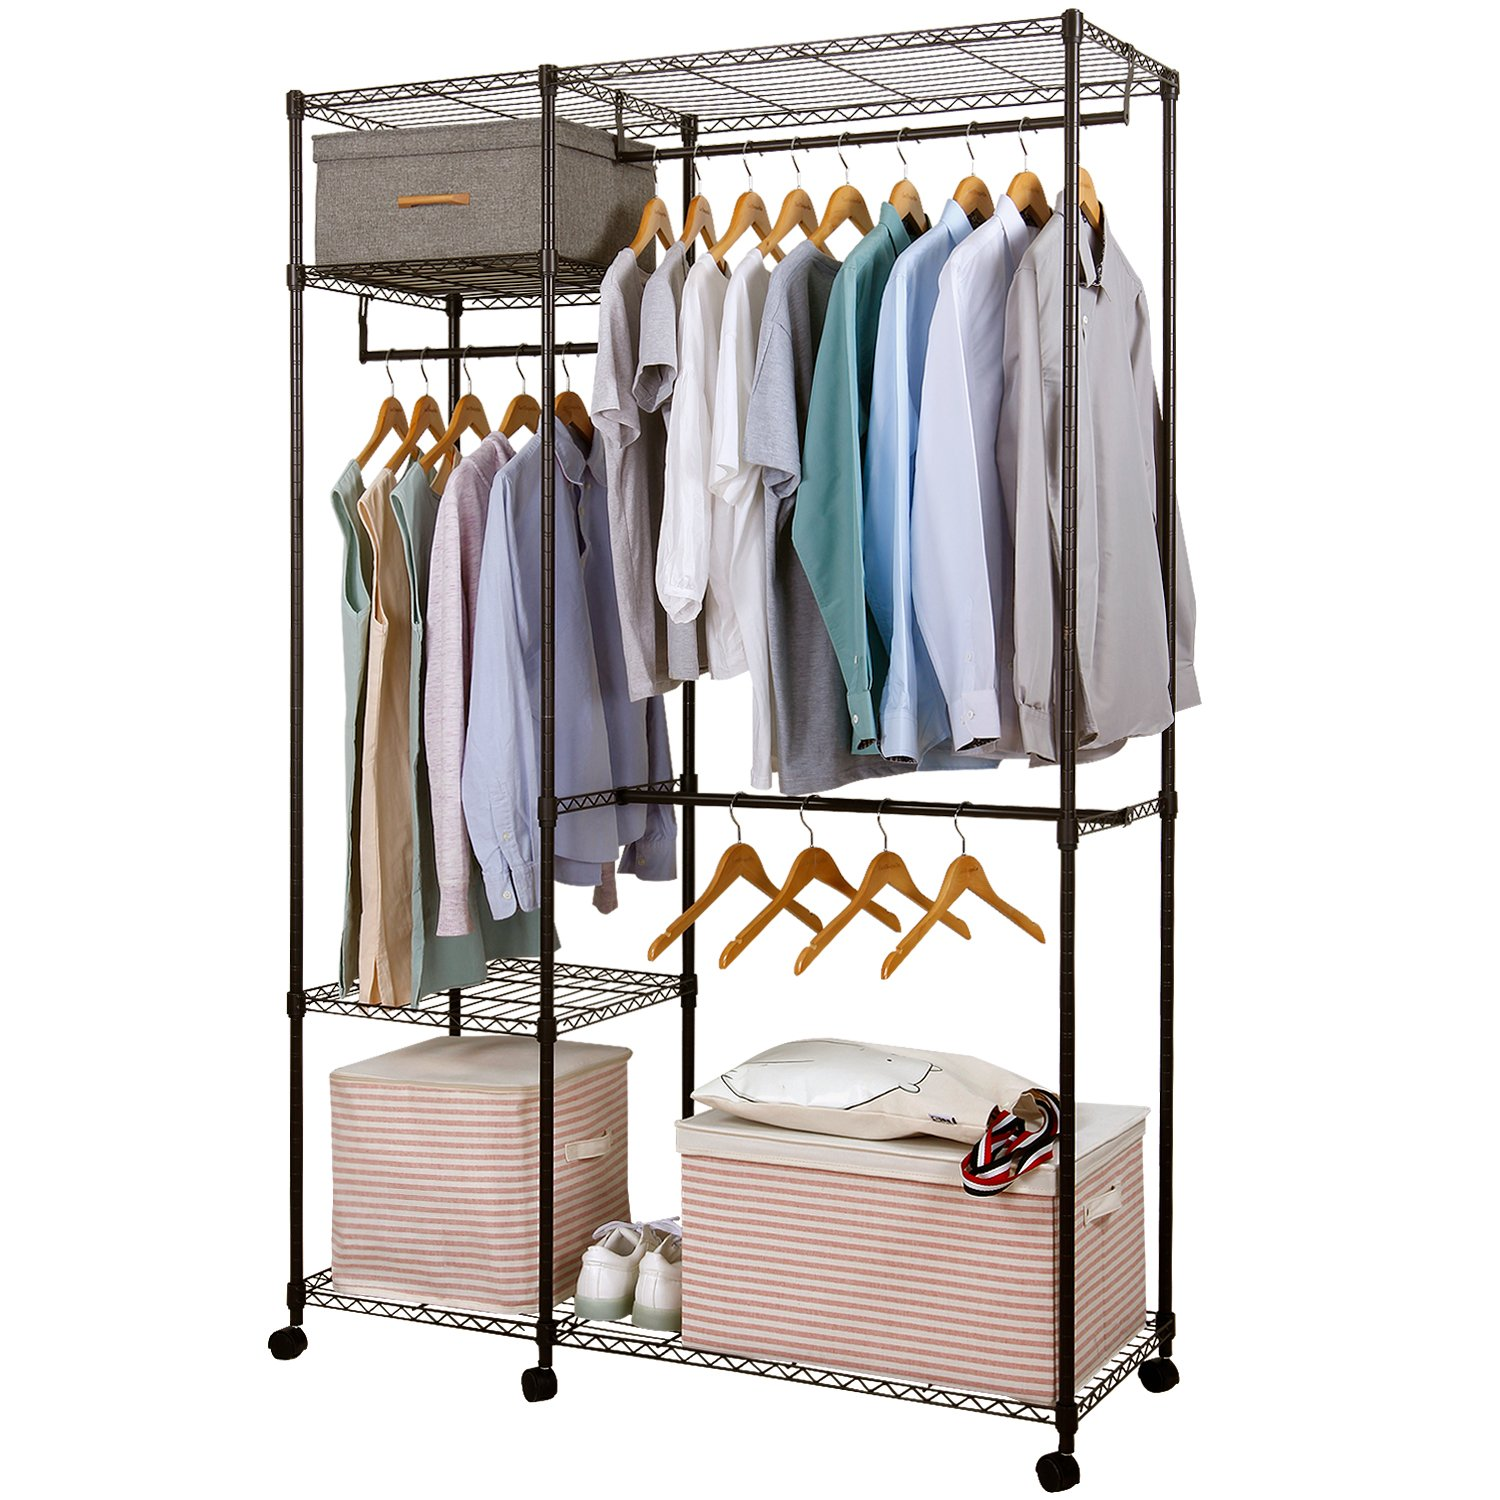 Delicieux Lifewit Free Standing Closet Garment Rack Heavy Duty Clothes Wardrobe  Rolling Clothes Rack Closet Storage Organizer With Hanger Bar Black